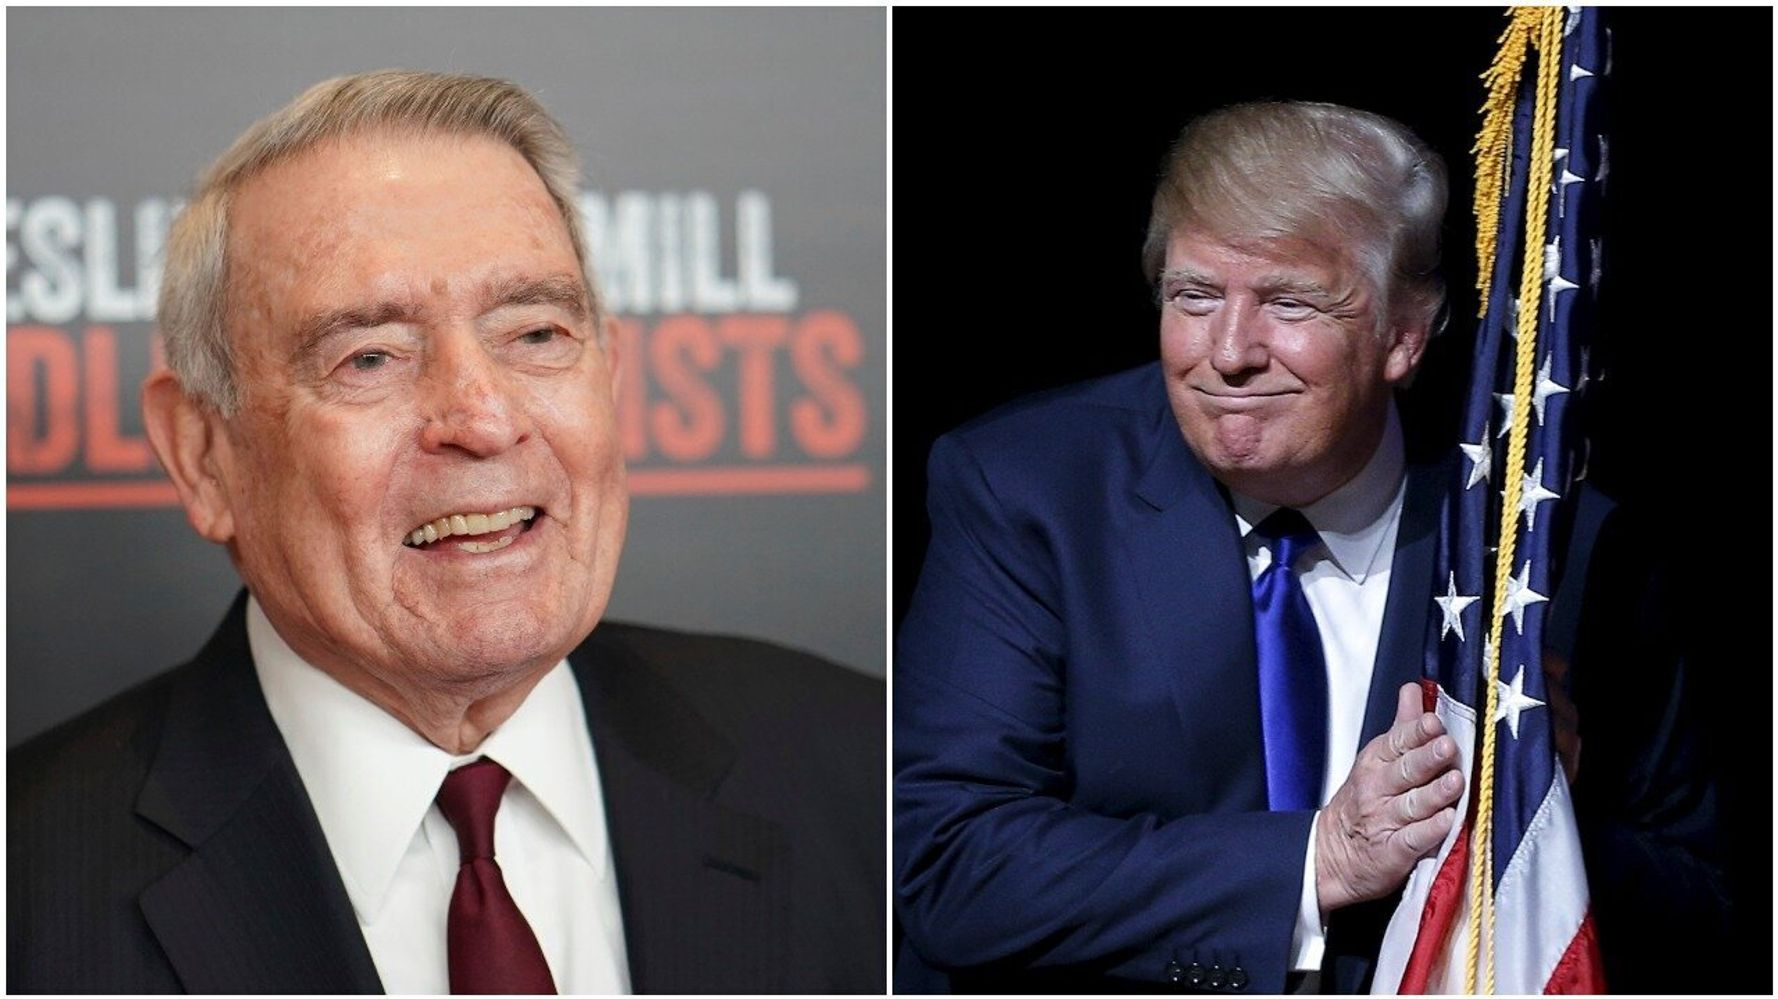 Dan Rather Schools Trump On Reelection Chances With Only 3 Words